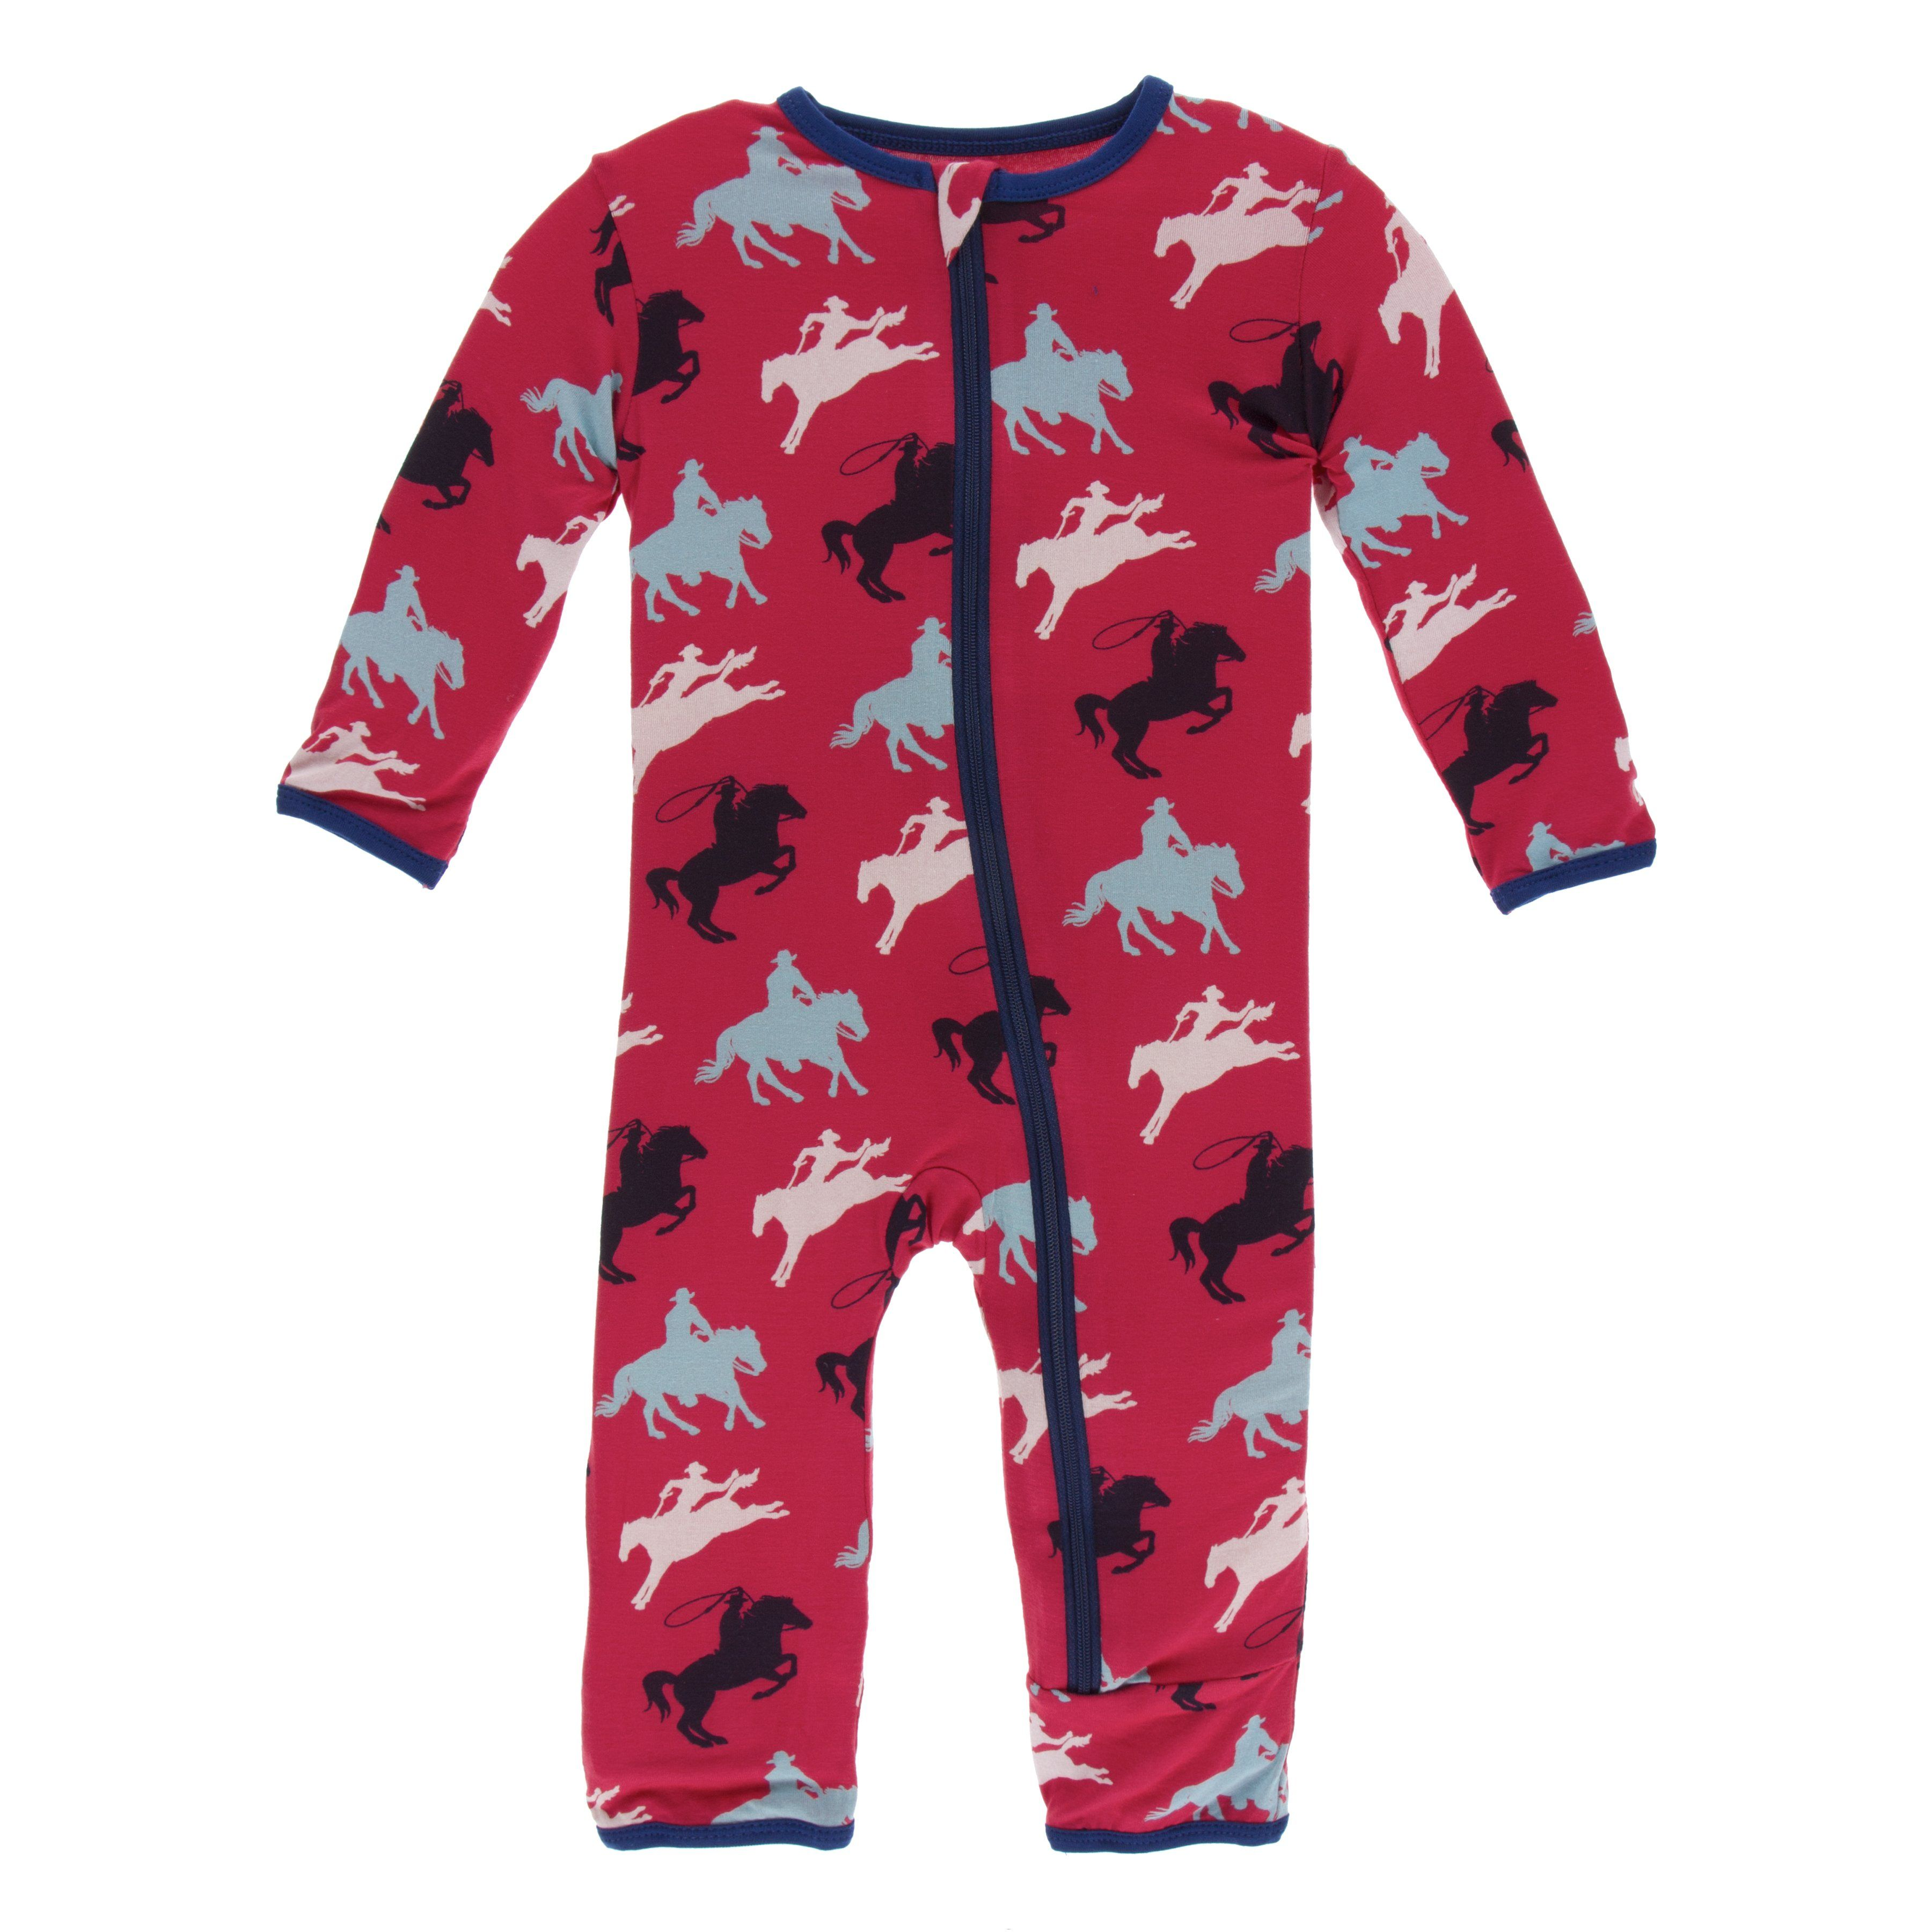 Kickee Pants Print Coverall with ZIPPER - Flag Red Cowboy ...